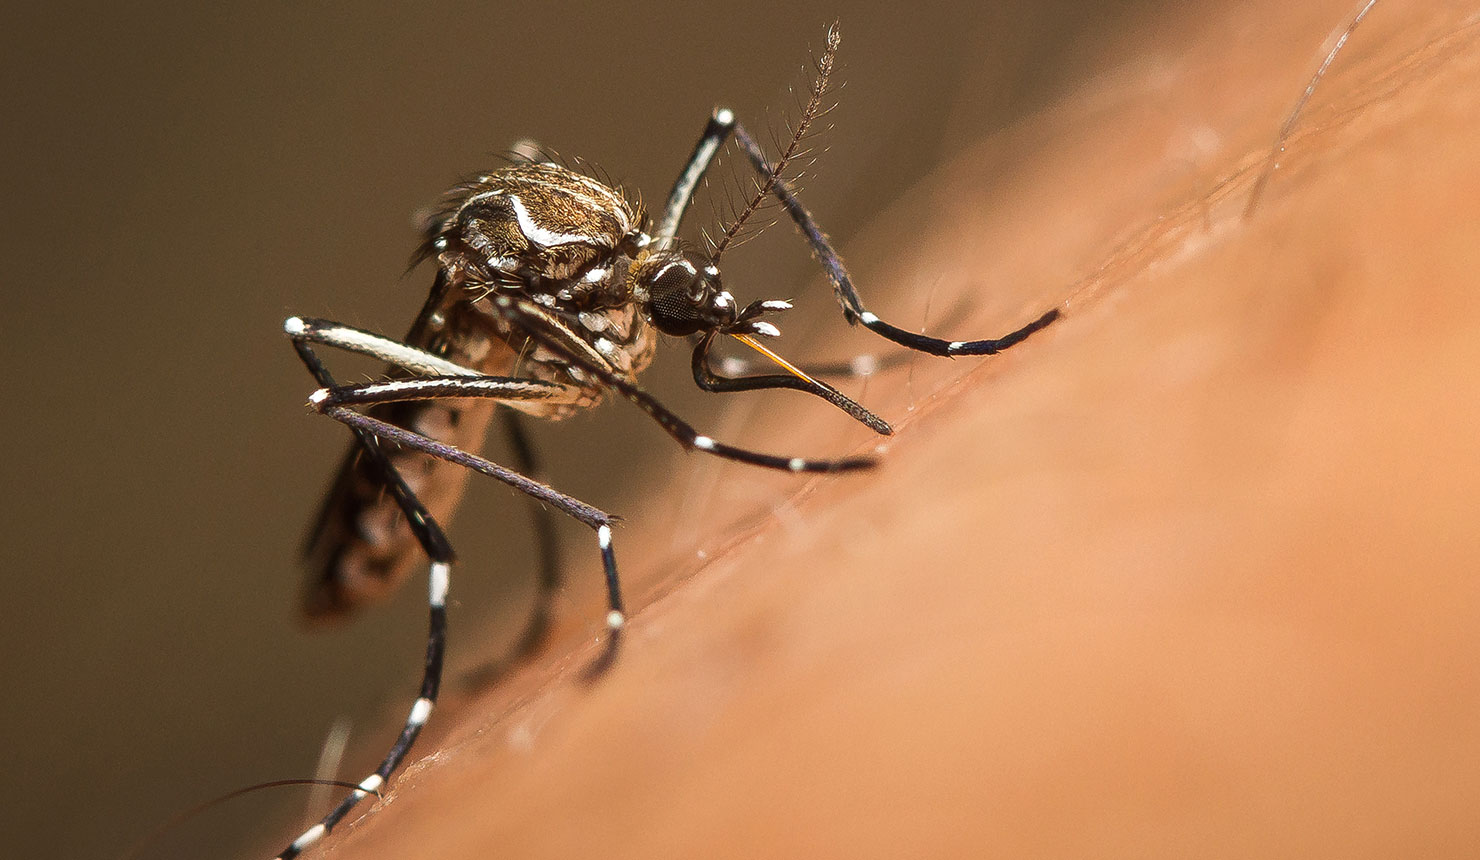 Zika virus is primarily transmitted to people through the bite of an infected mosquito from the Aedes genus, mainly Aedes aegypti in tropical regions. (World Health Organization, photo: Shutterstock)